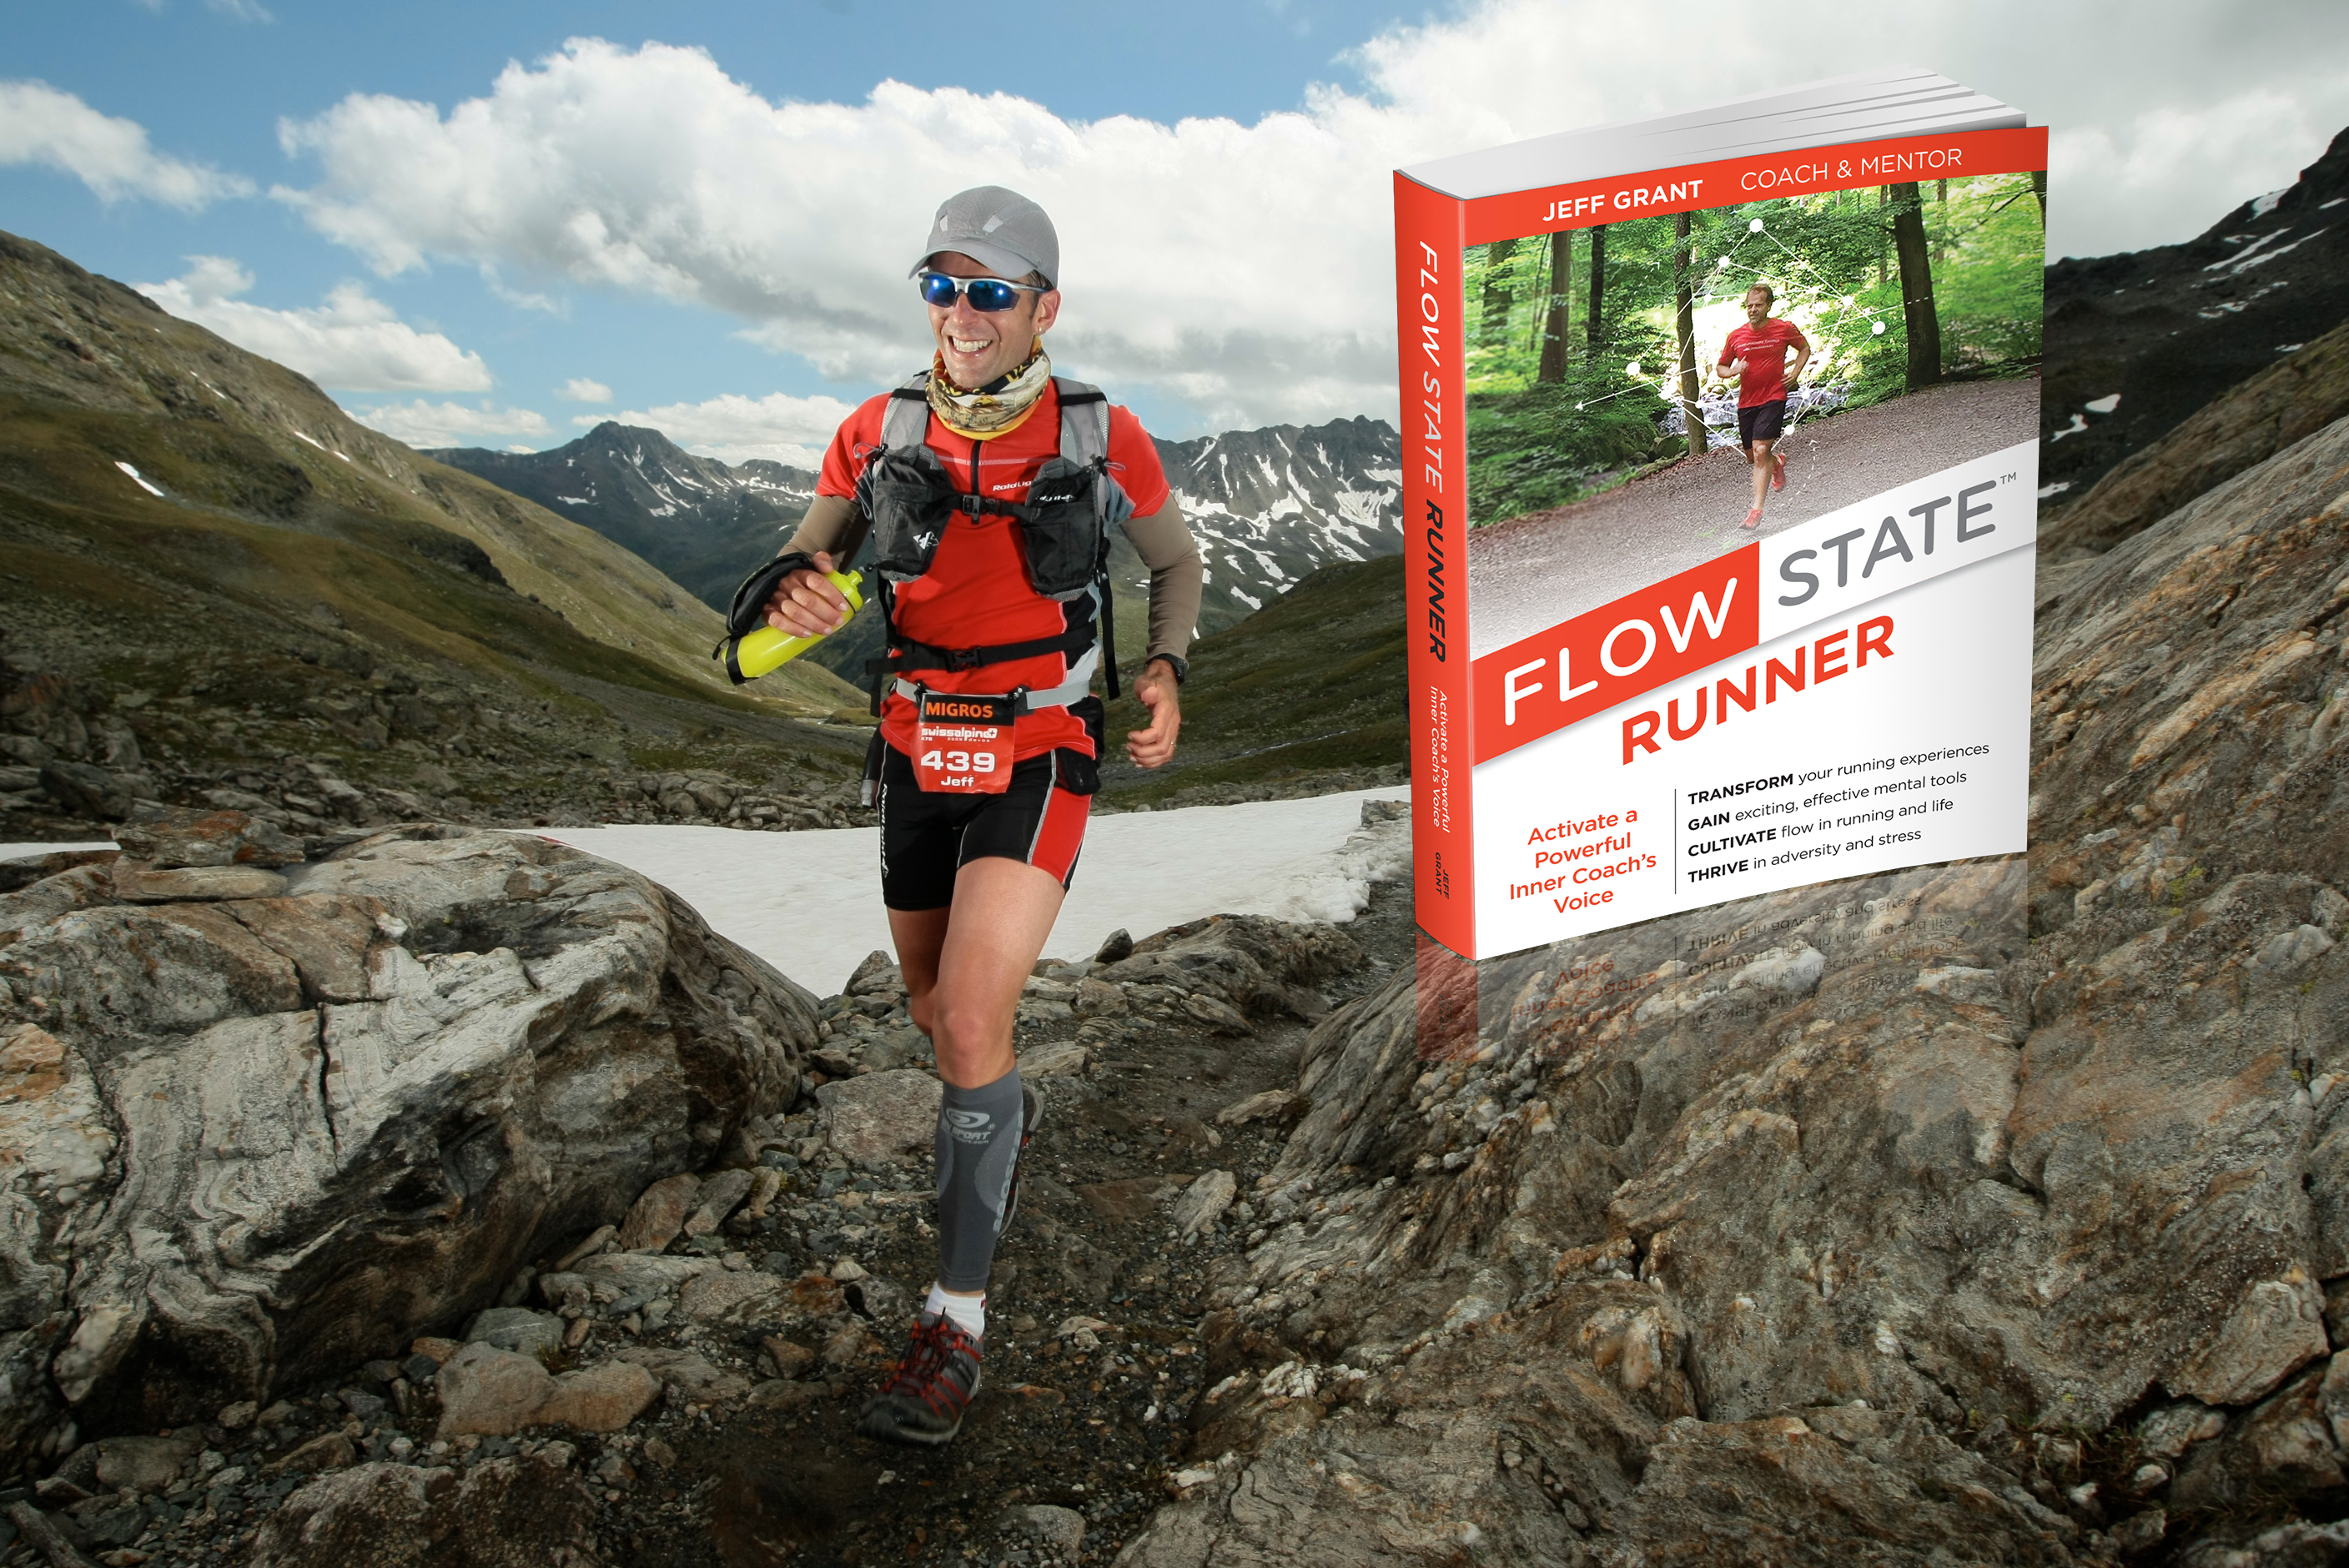 Jeff Grant Author of Flow State Runner